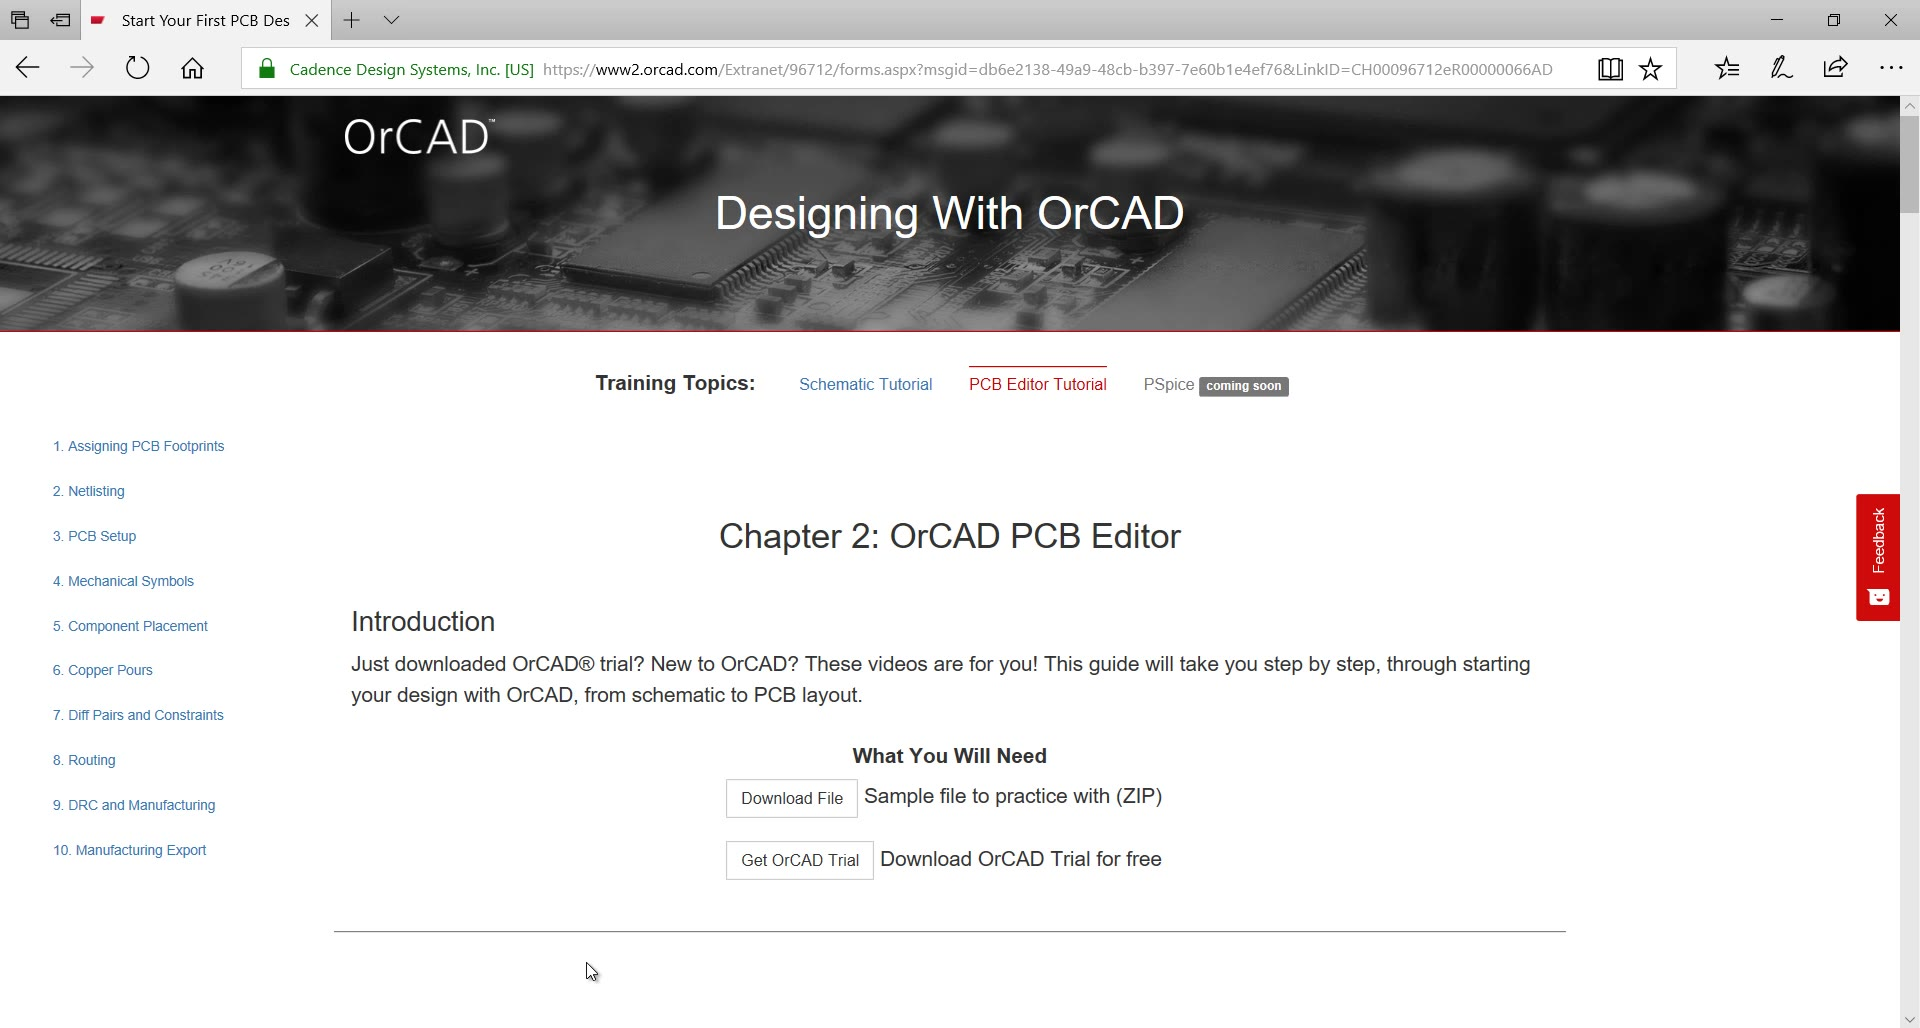 Start Your First PCB Design in OrCAD